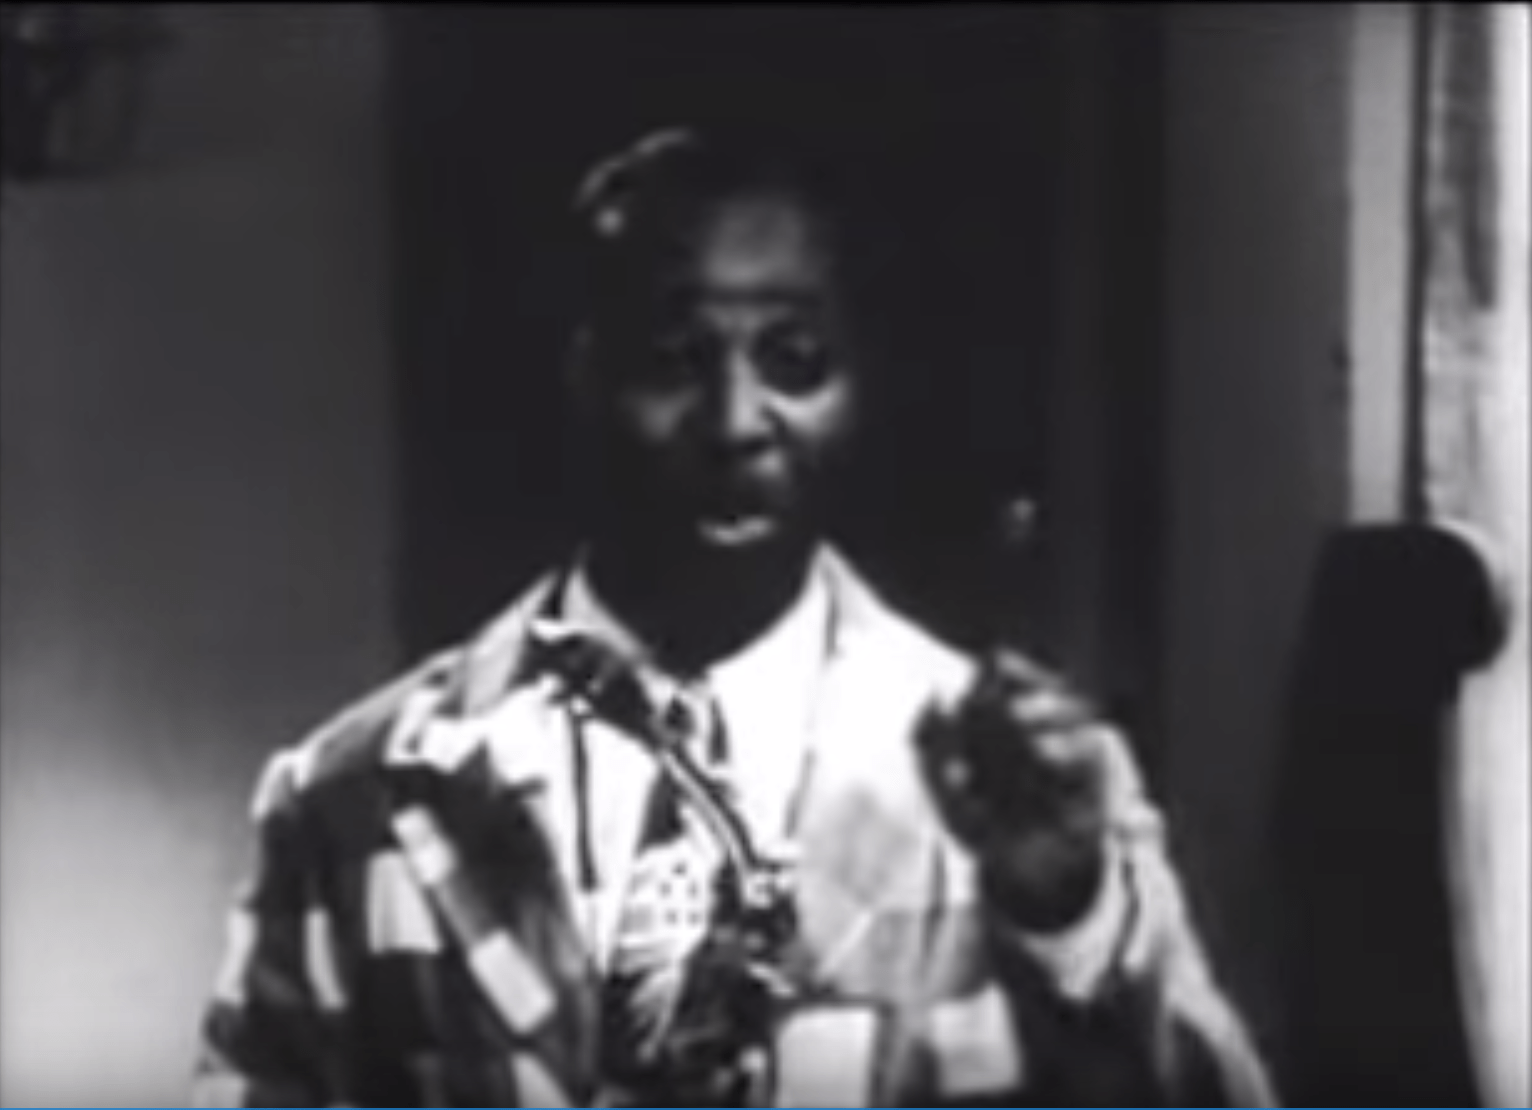 Louis Jordan: Hold On - 1940's